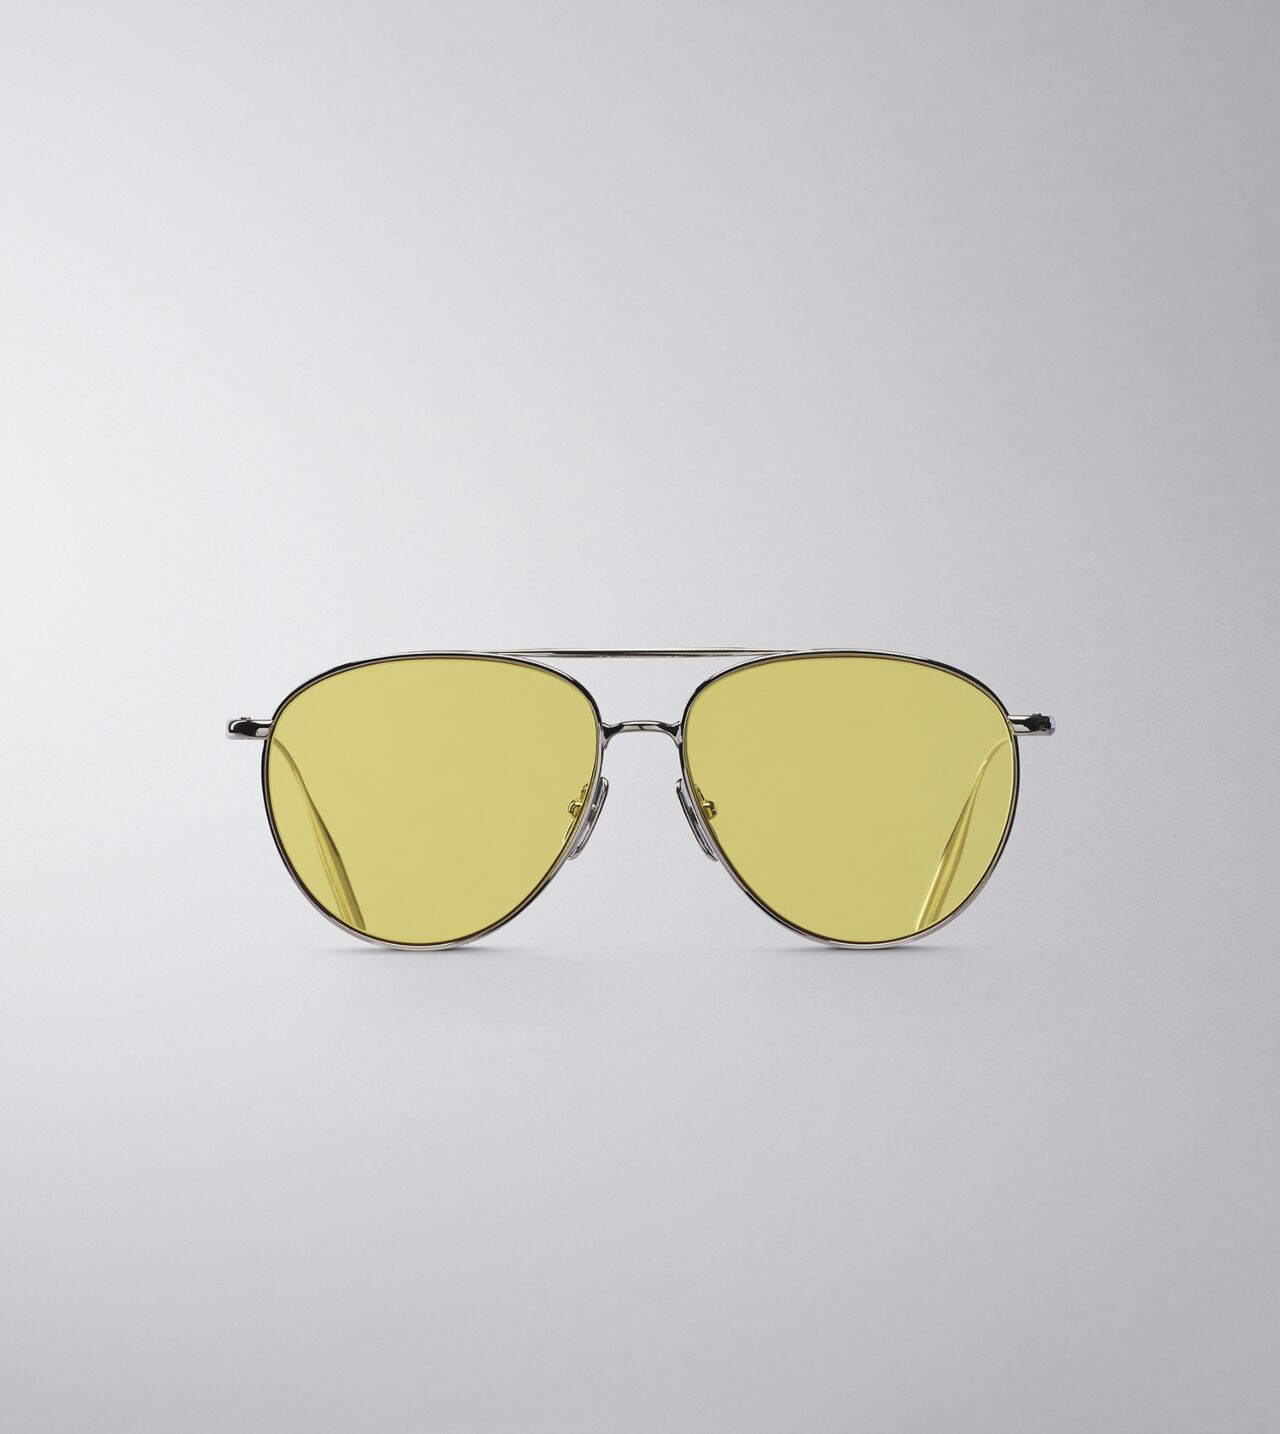 Picture of Byredo The Certified Pilot in Palladium yellow